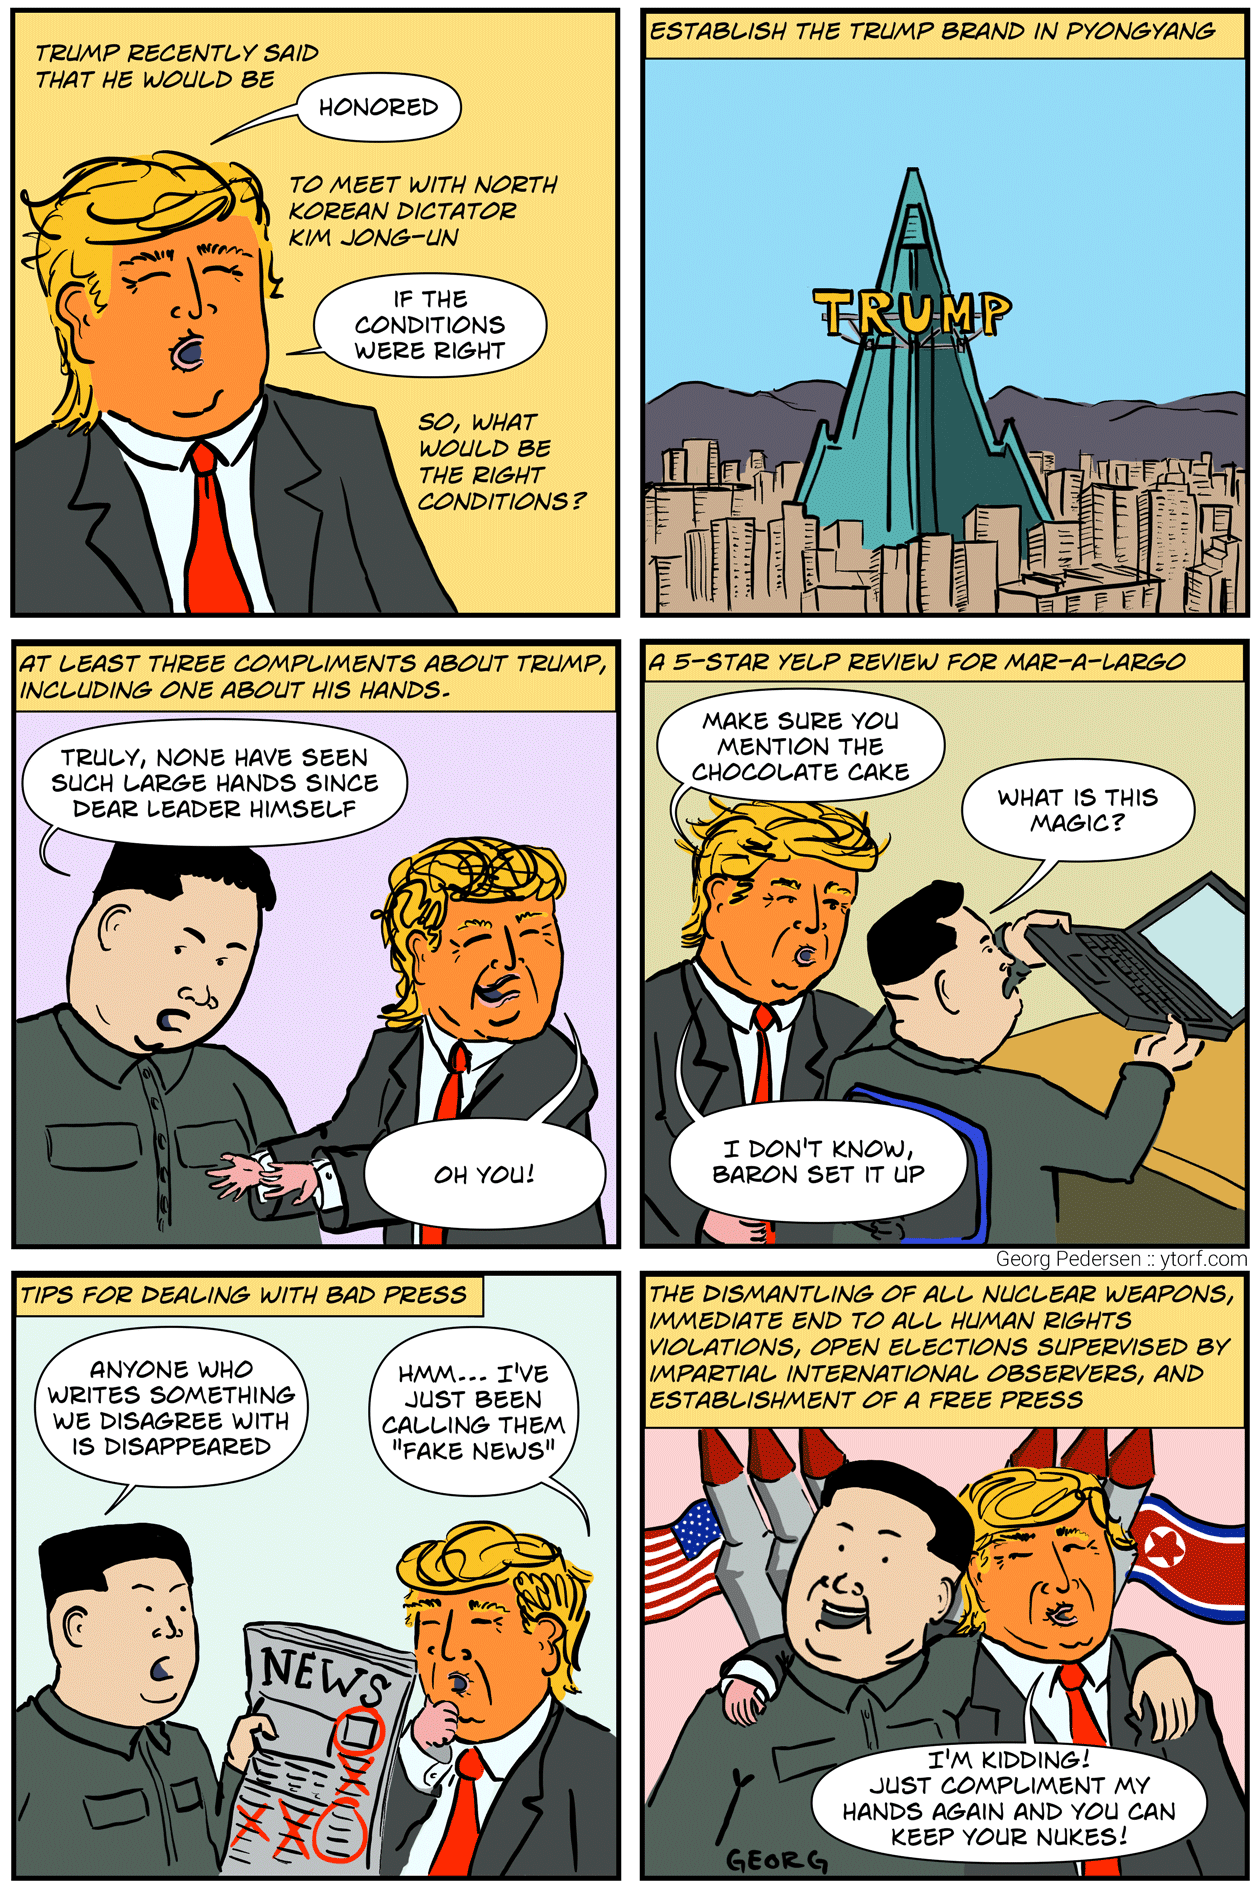 Negotiations breakdown when Kim Jong-Un demands to wear Trump's wig the the translator cannot explain how it could possibly be real hair